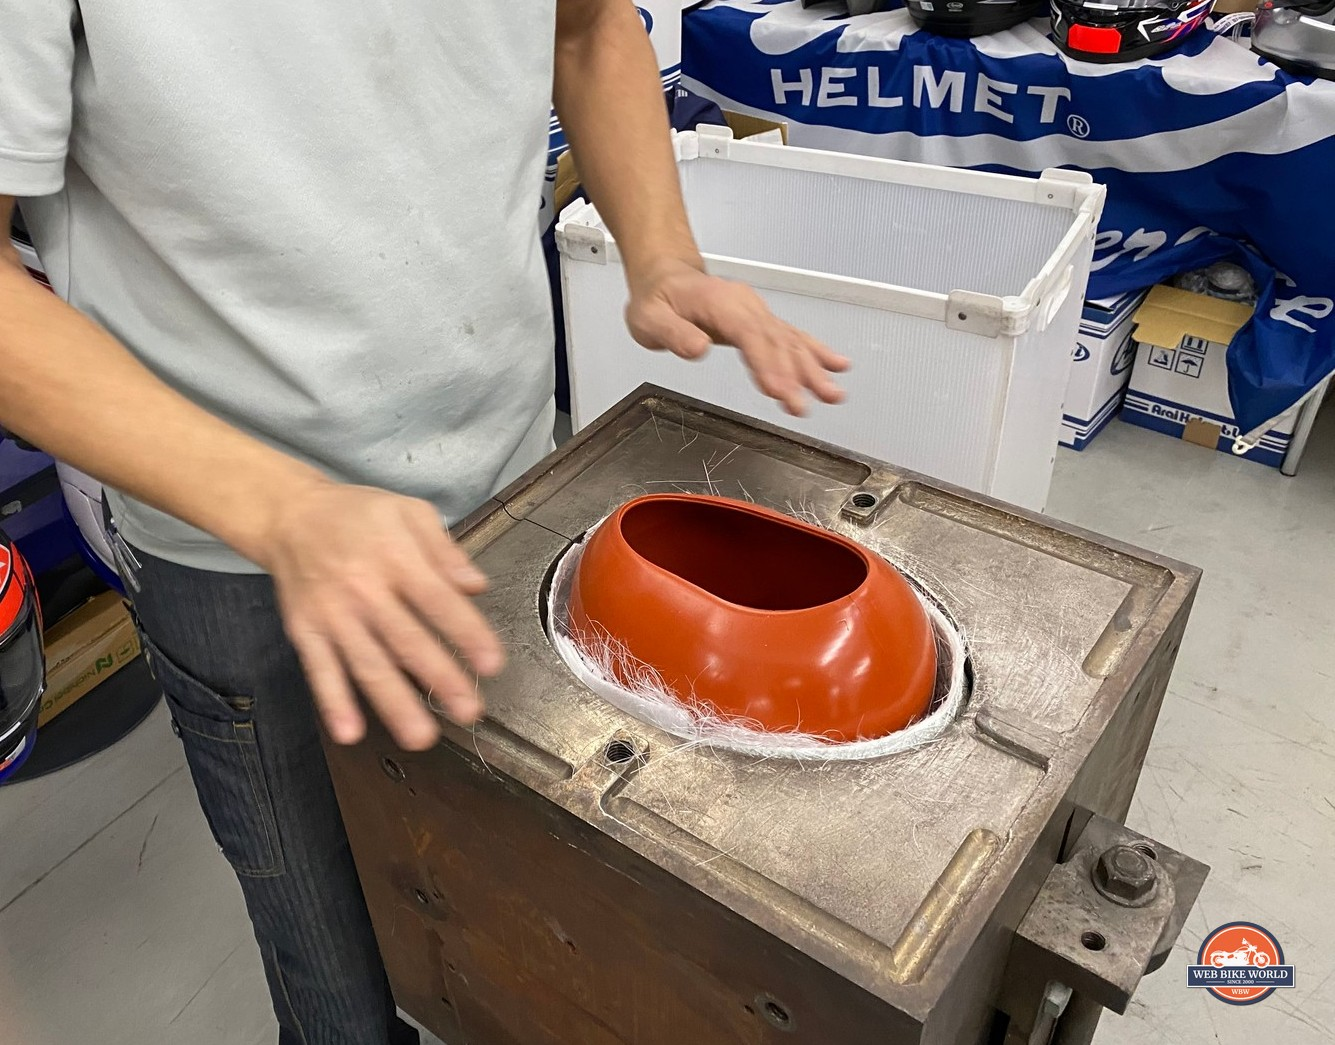 A balloon placed inside the helmet shell mold ready to be inflated to crush the materials together while it cures.